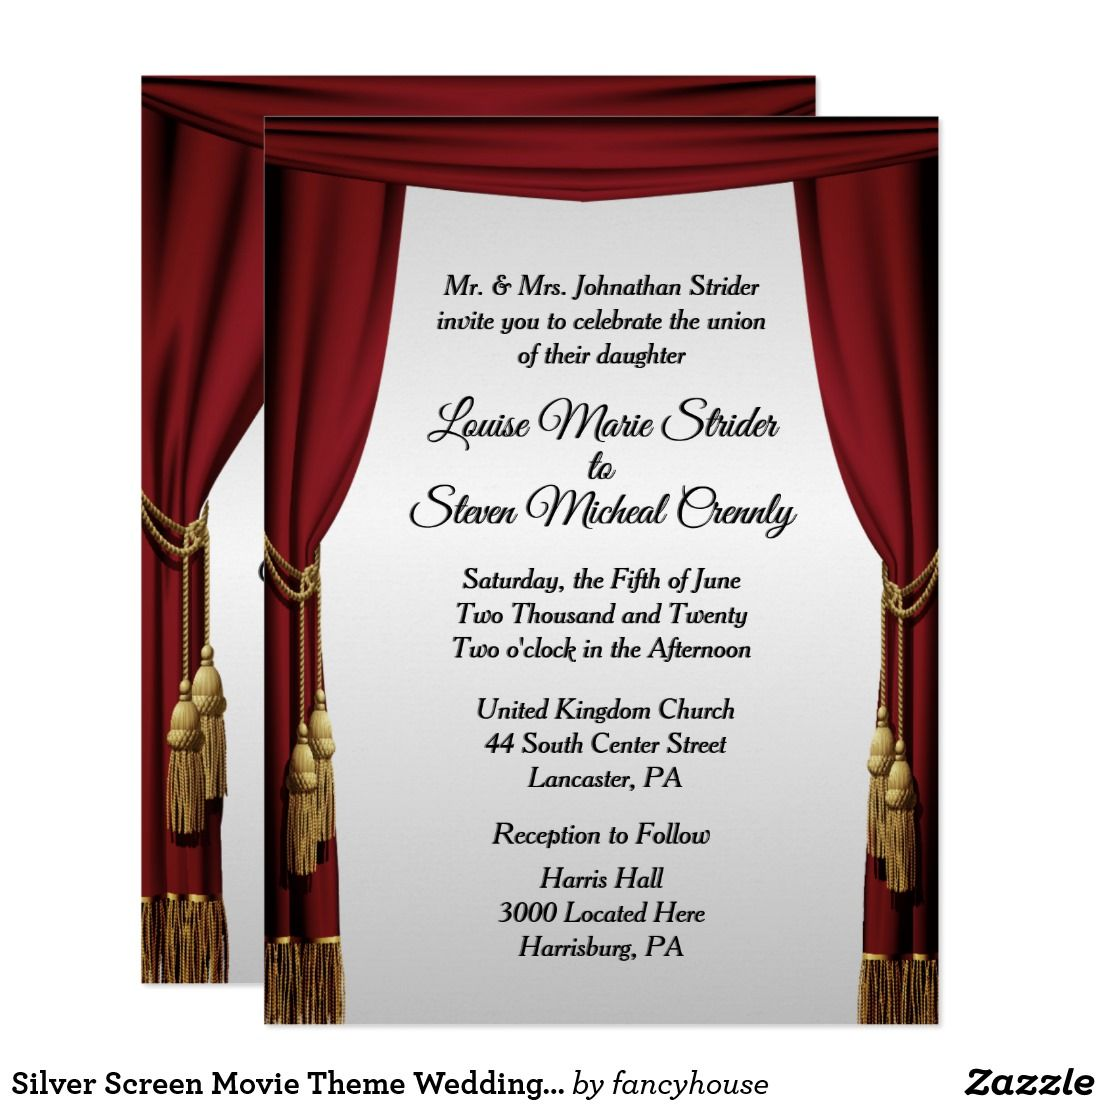 Silver Screen Movie Theme Wedding Invitation New and improved look ...